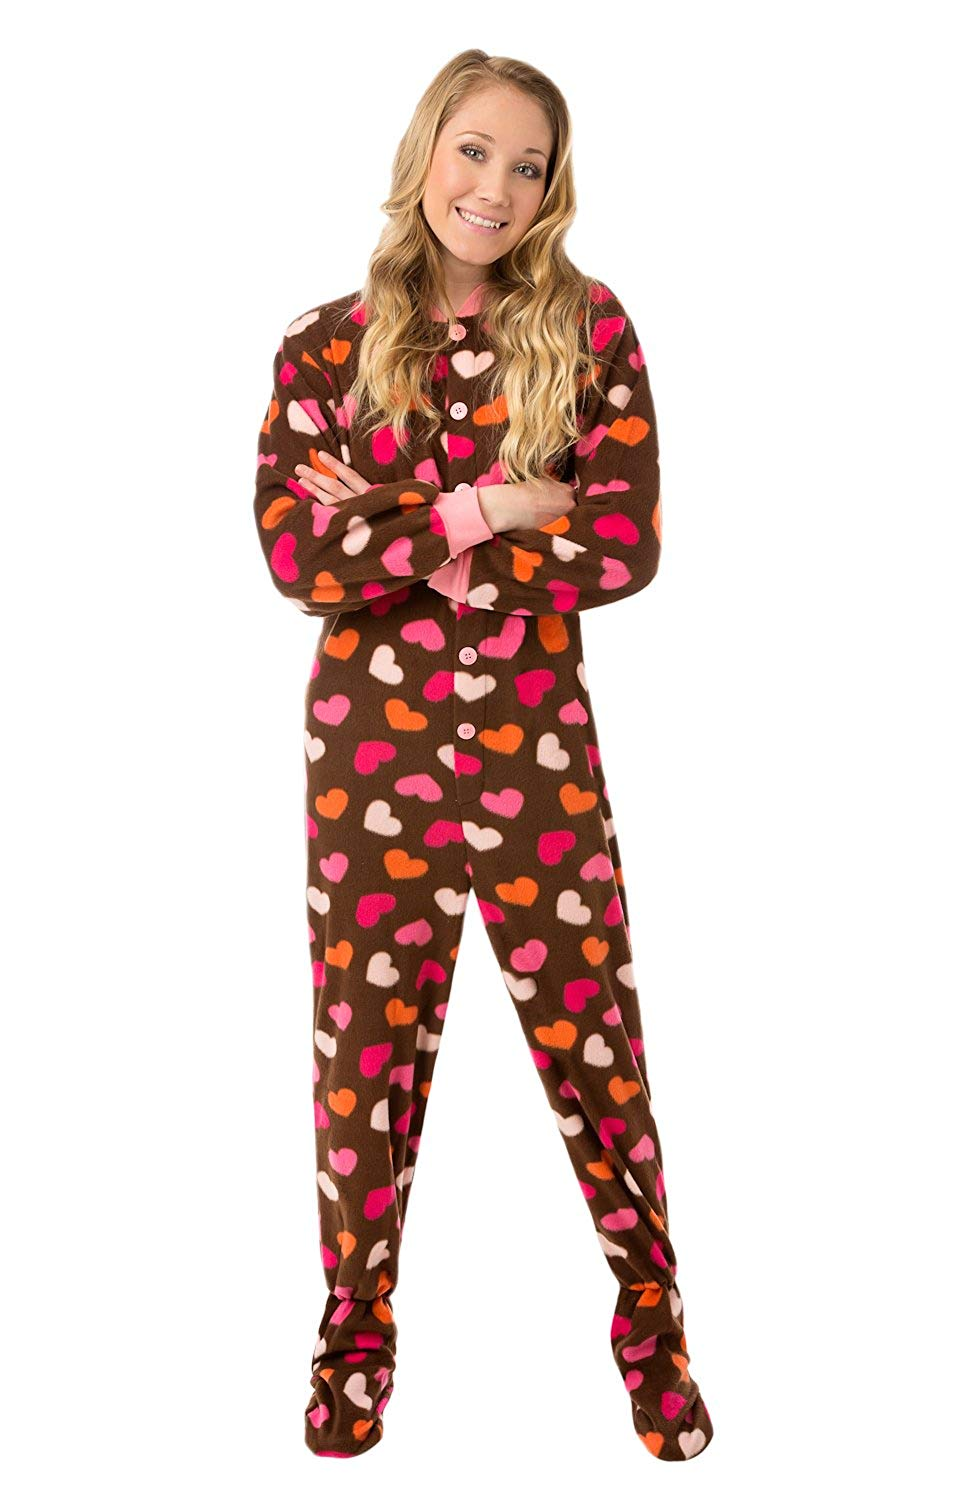 cheap-footie-pajamas-for-adults-nude-women-having-bondage-sex